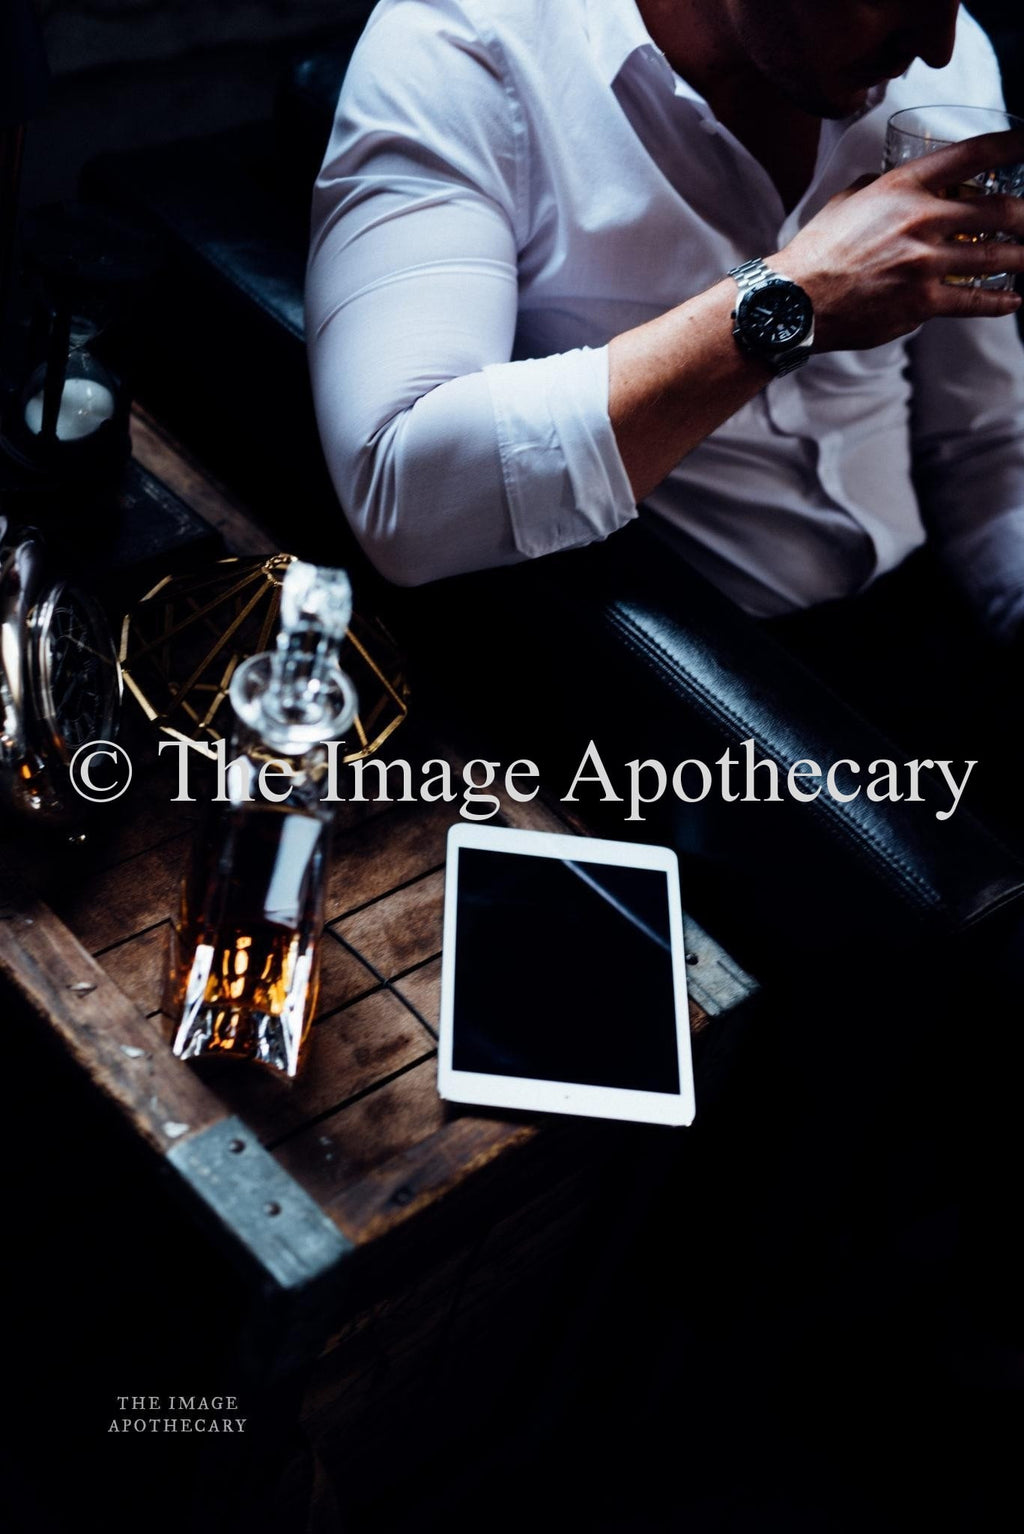 TheImageApothecary-195 - Stock Photography by The Image Apothecary